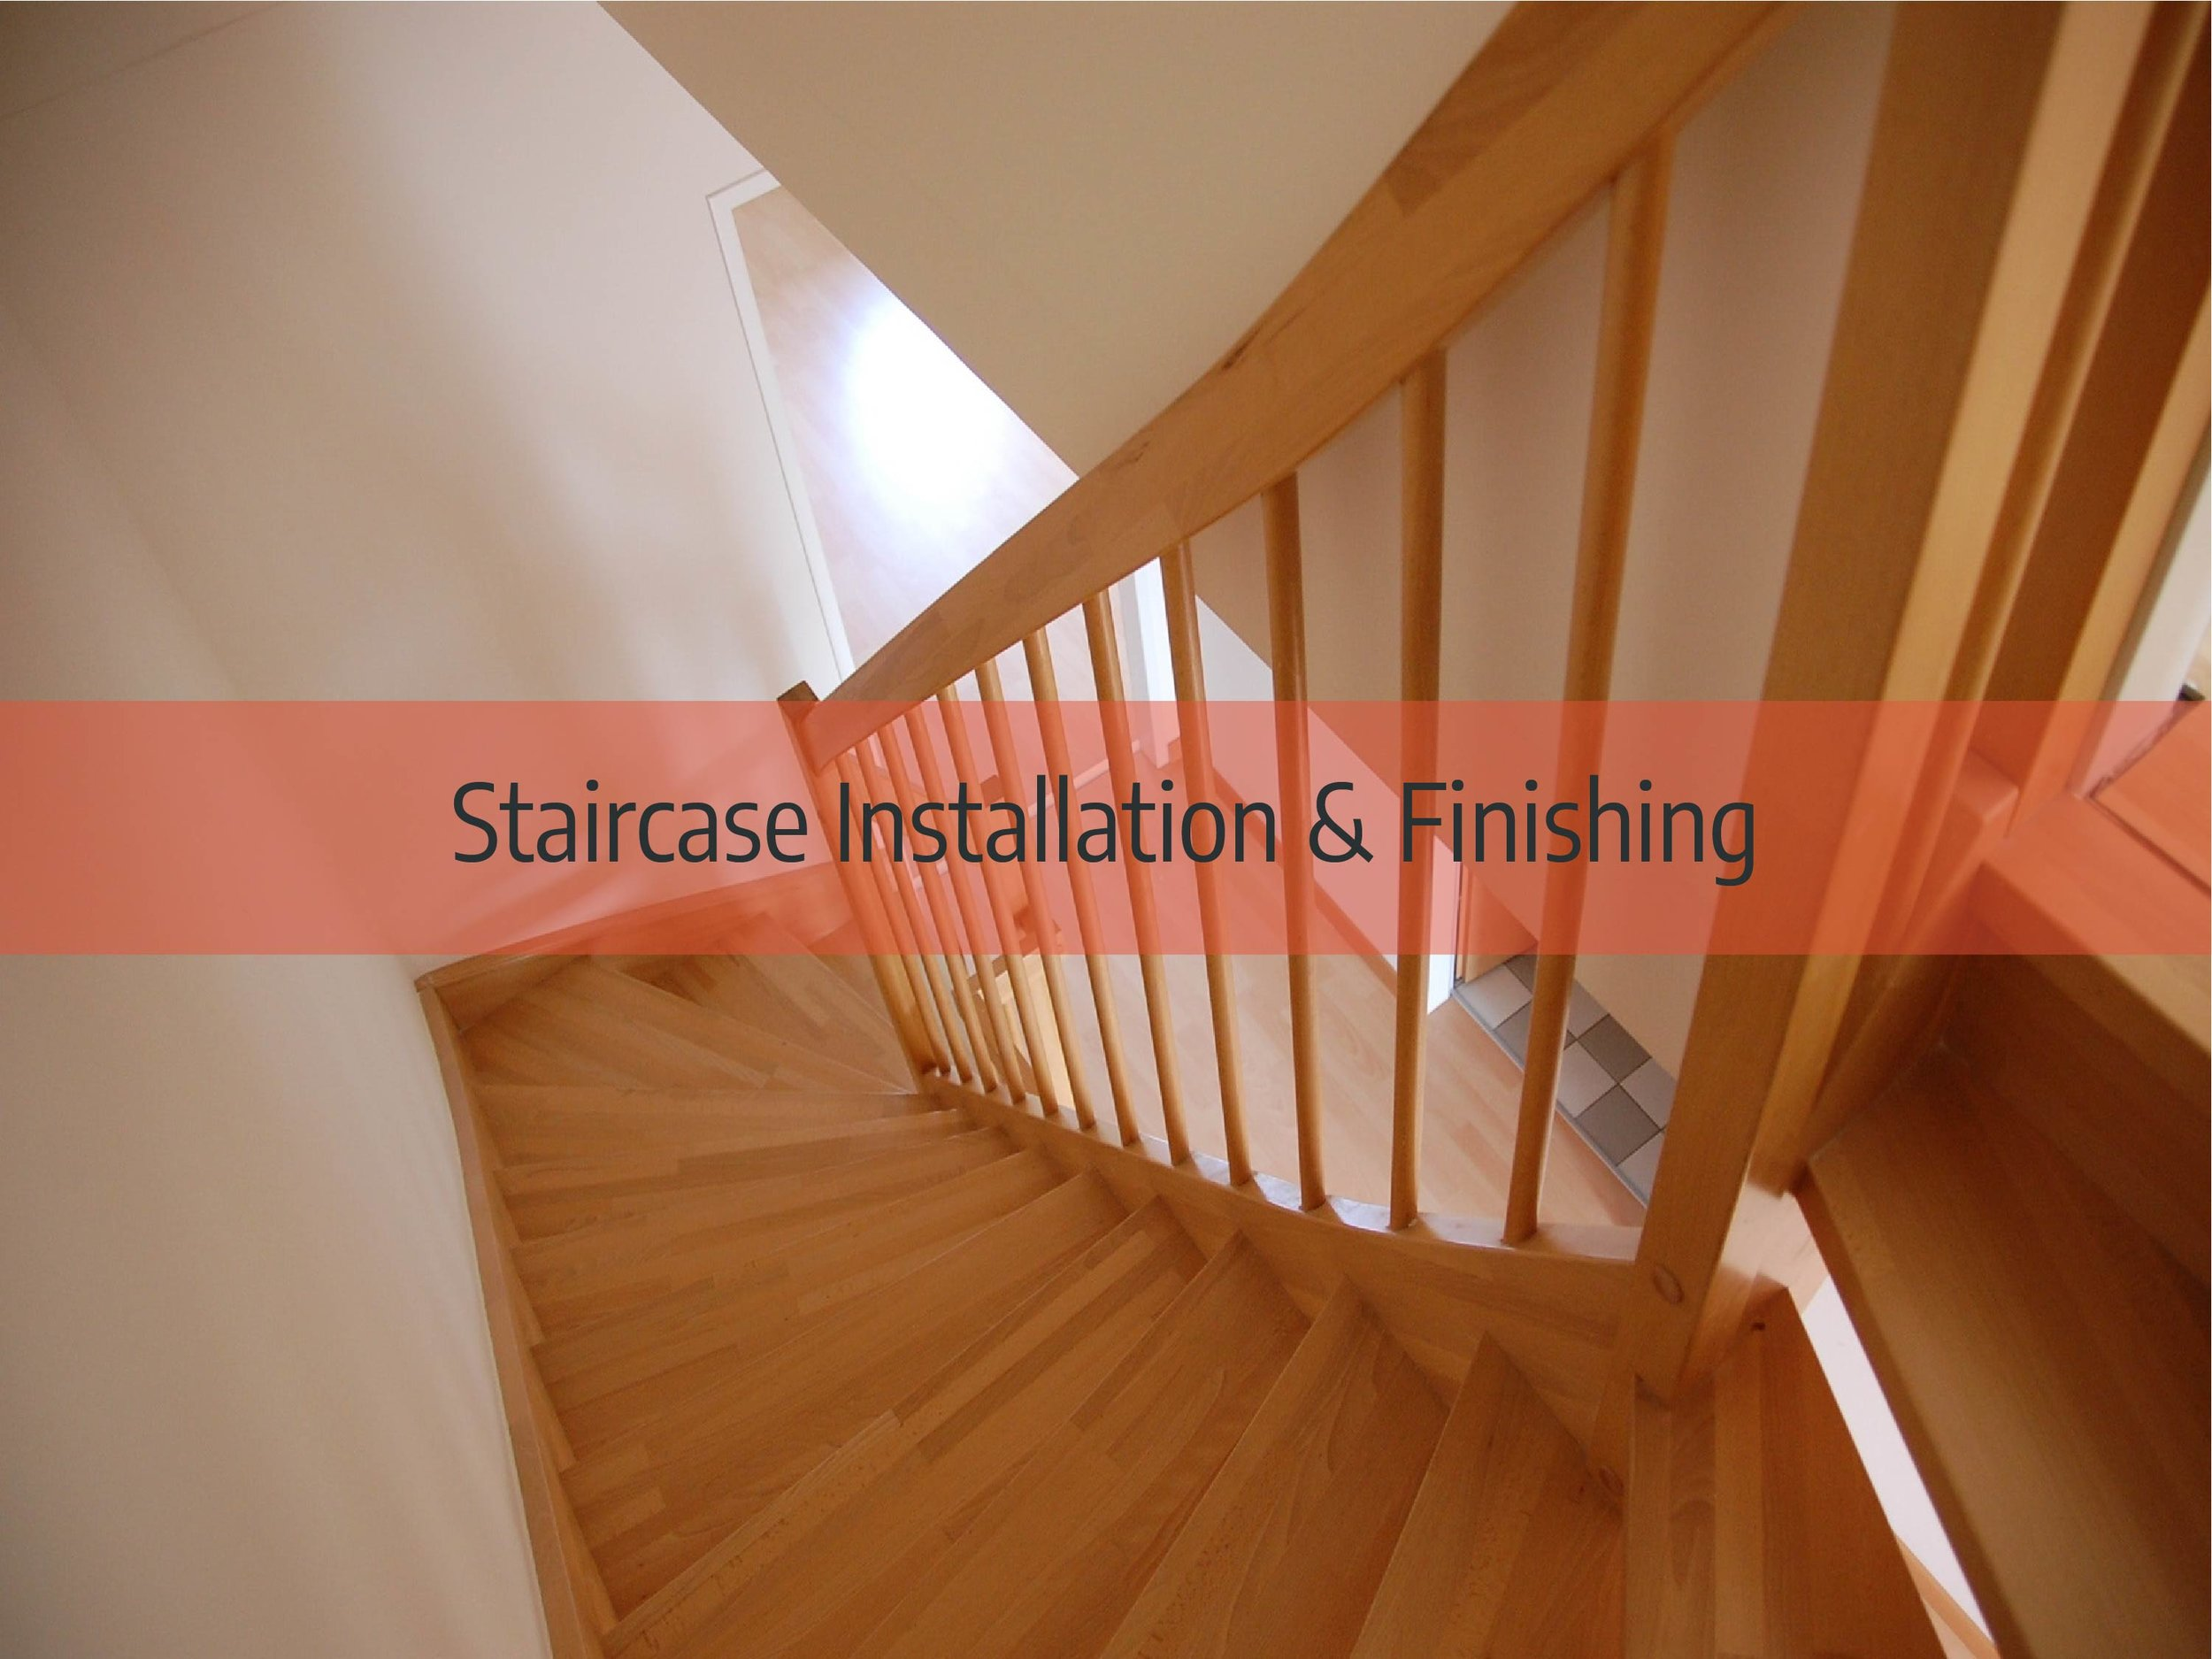 hardwood floor staircase installation and finishing